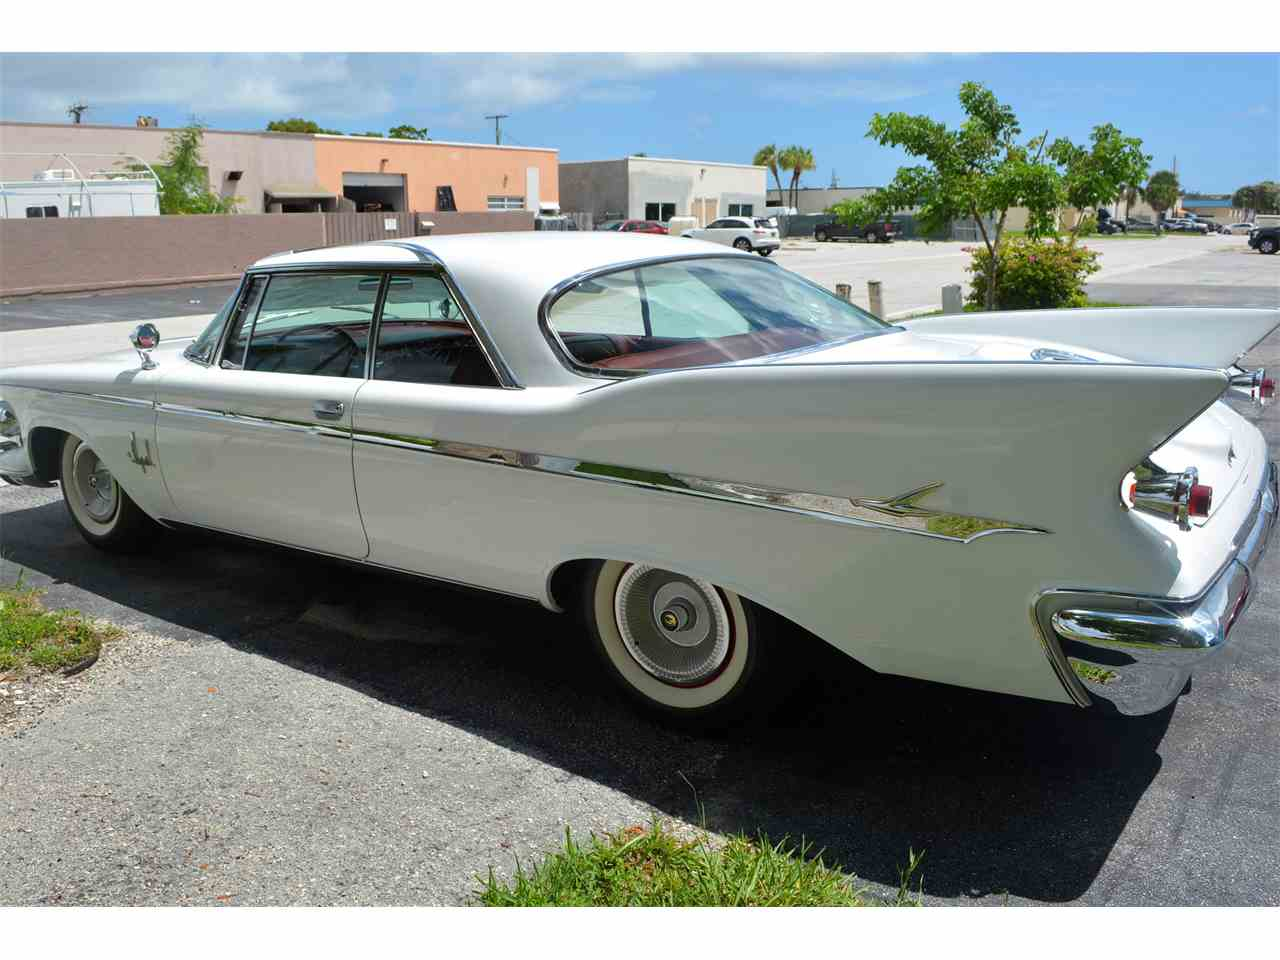 1961 Chrysler Imperial For Sale Classiccars Com Cc 1037123